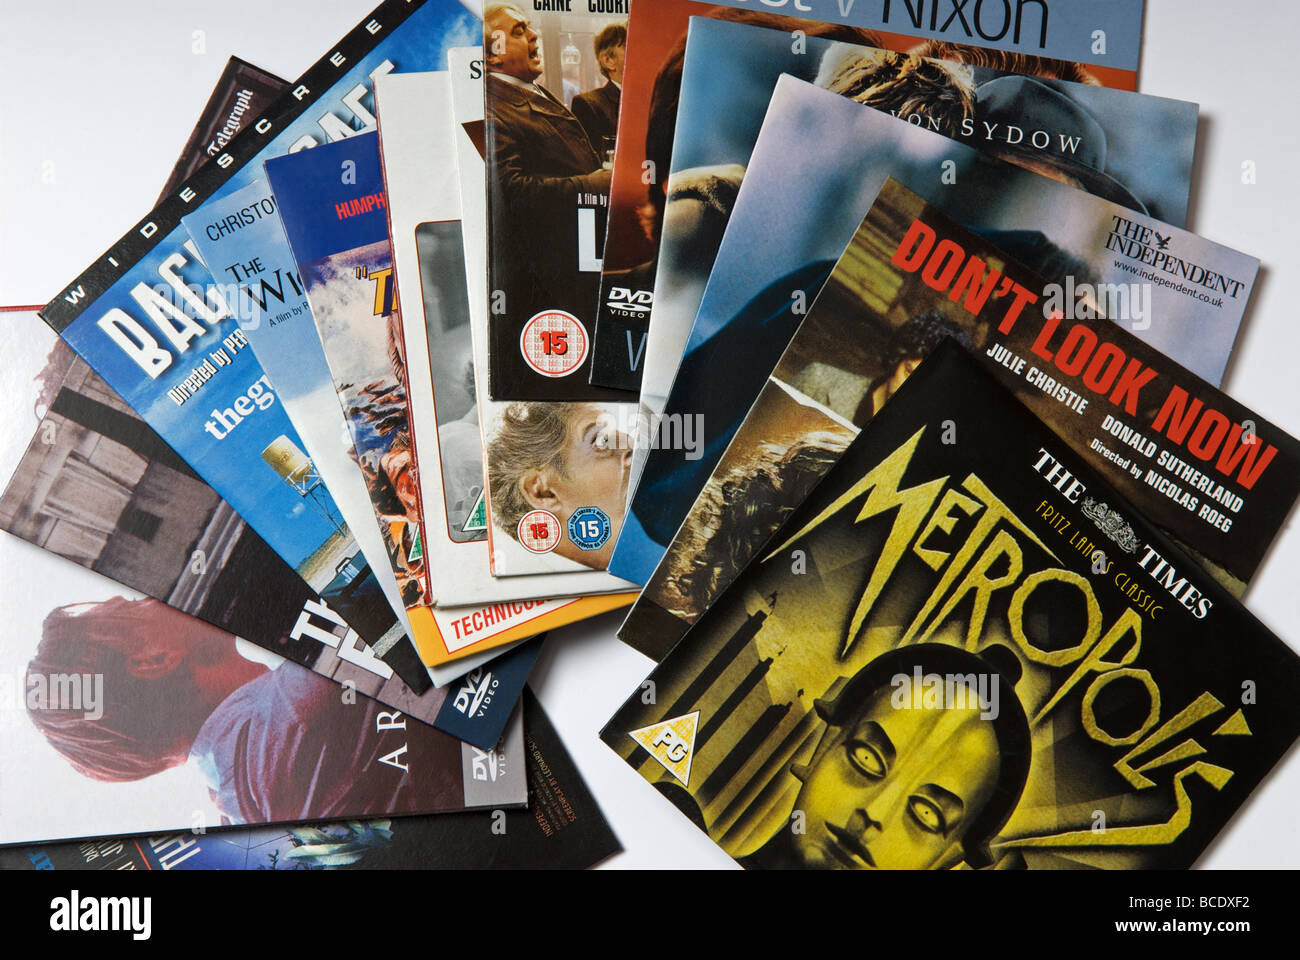 A selection of DVD's given away free with British newspapers - Stock Image